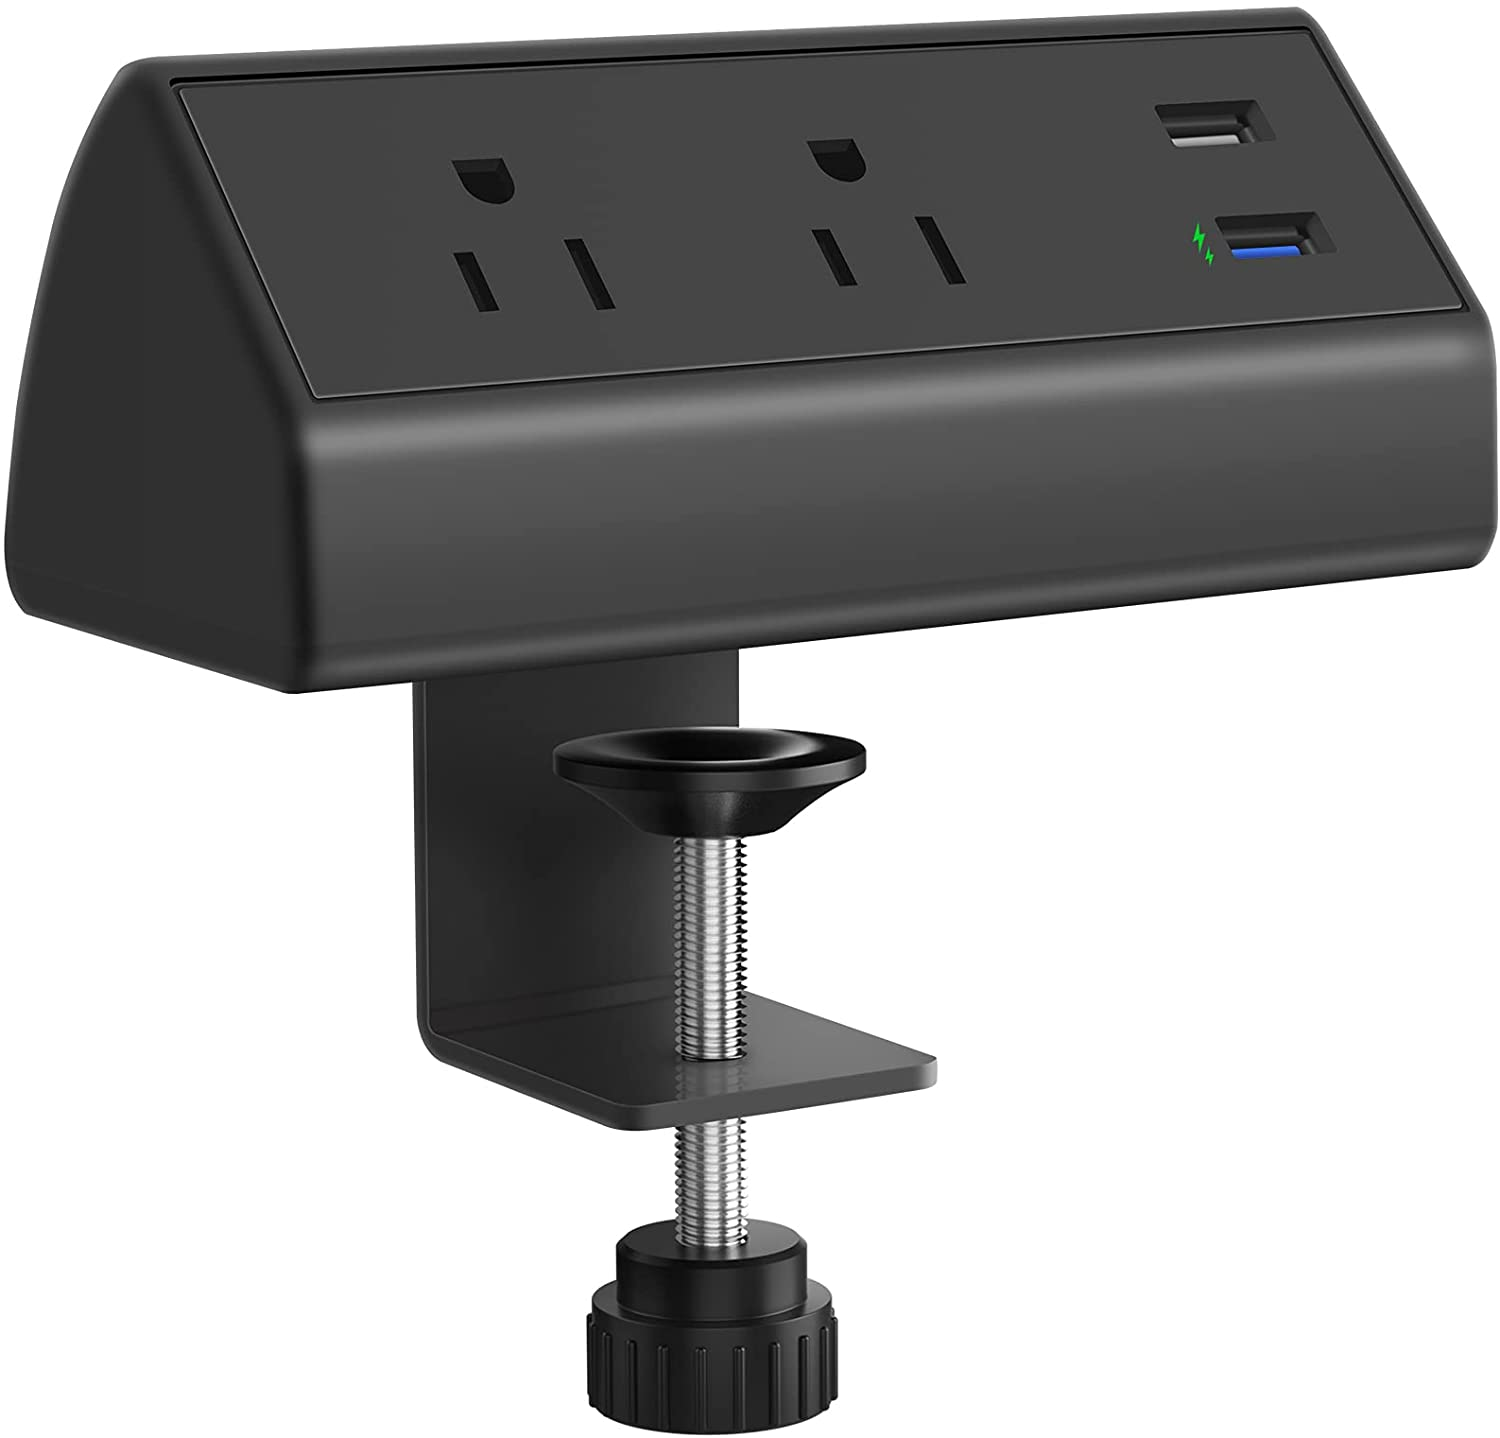 CCCEI Fast Charging Desk Clamp Power Strip, QC3.0 USB Port, 500J Surge Protector on Desktop Mount Power Strip, Fit 1.6 inch Tabletop Edge Thick. (Black).